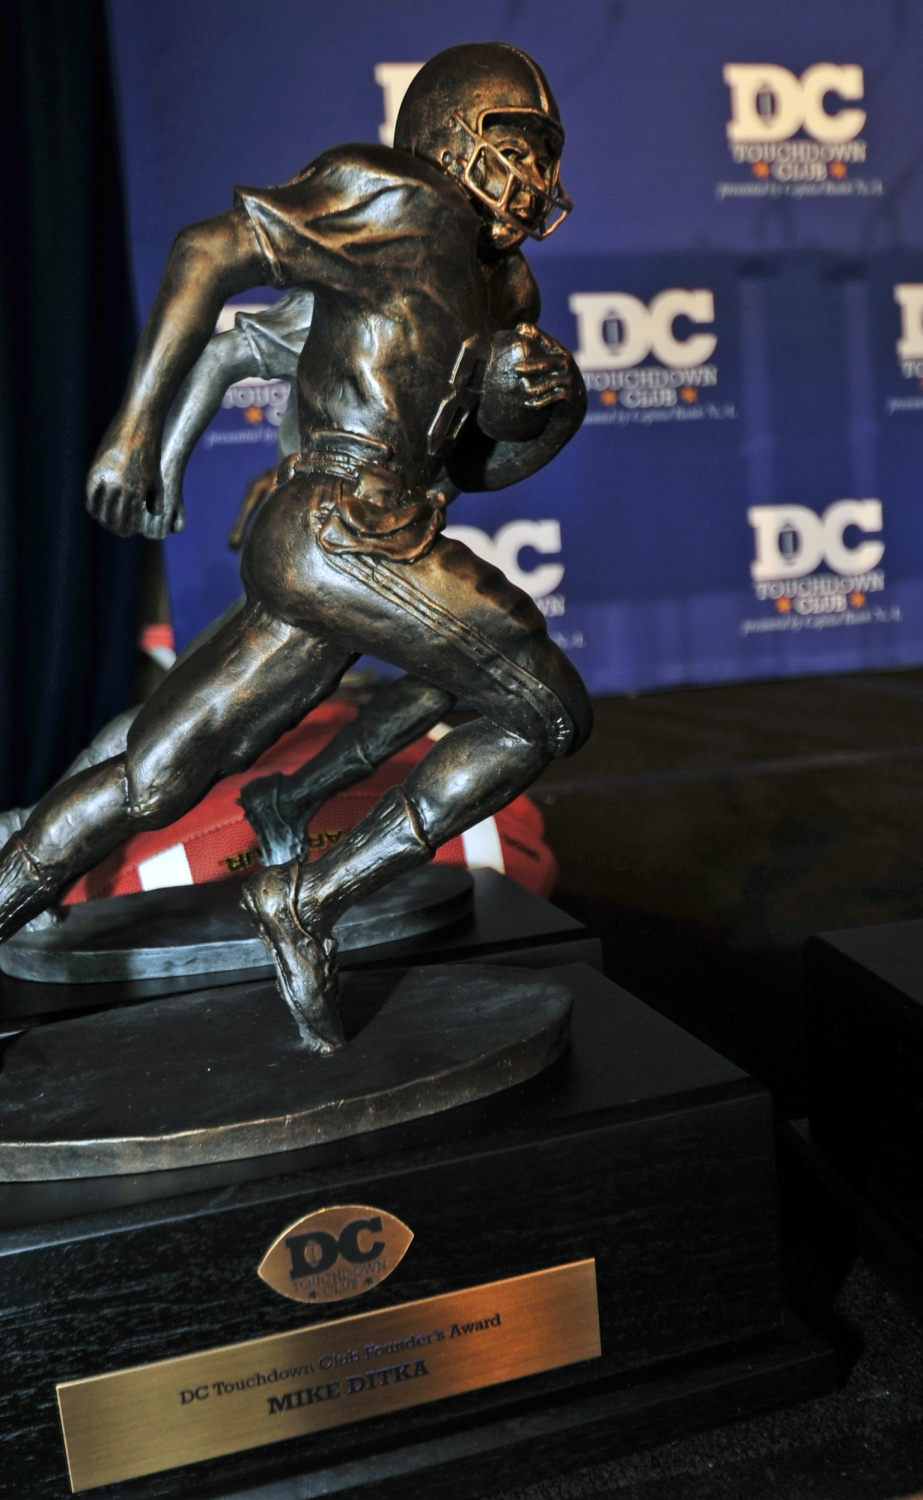 2015dctouchdownclubawards002.jpg